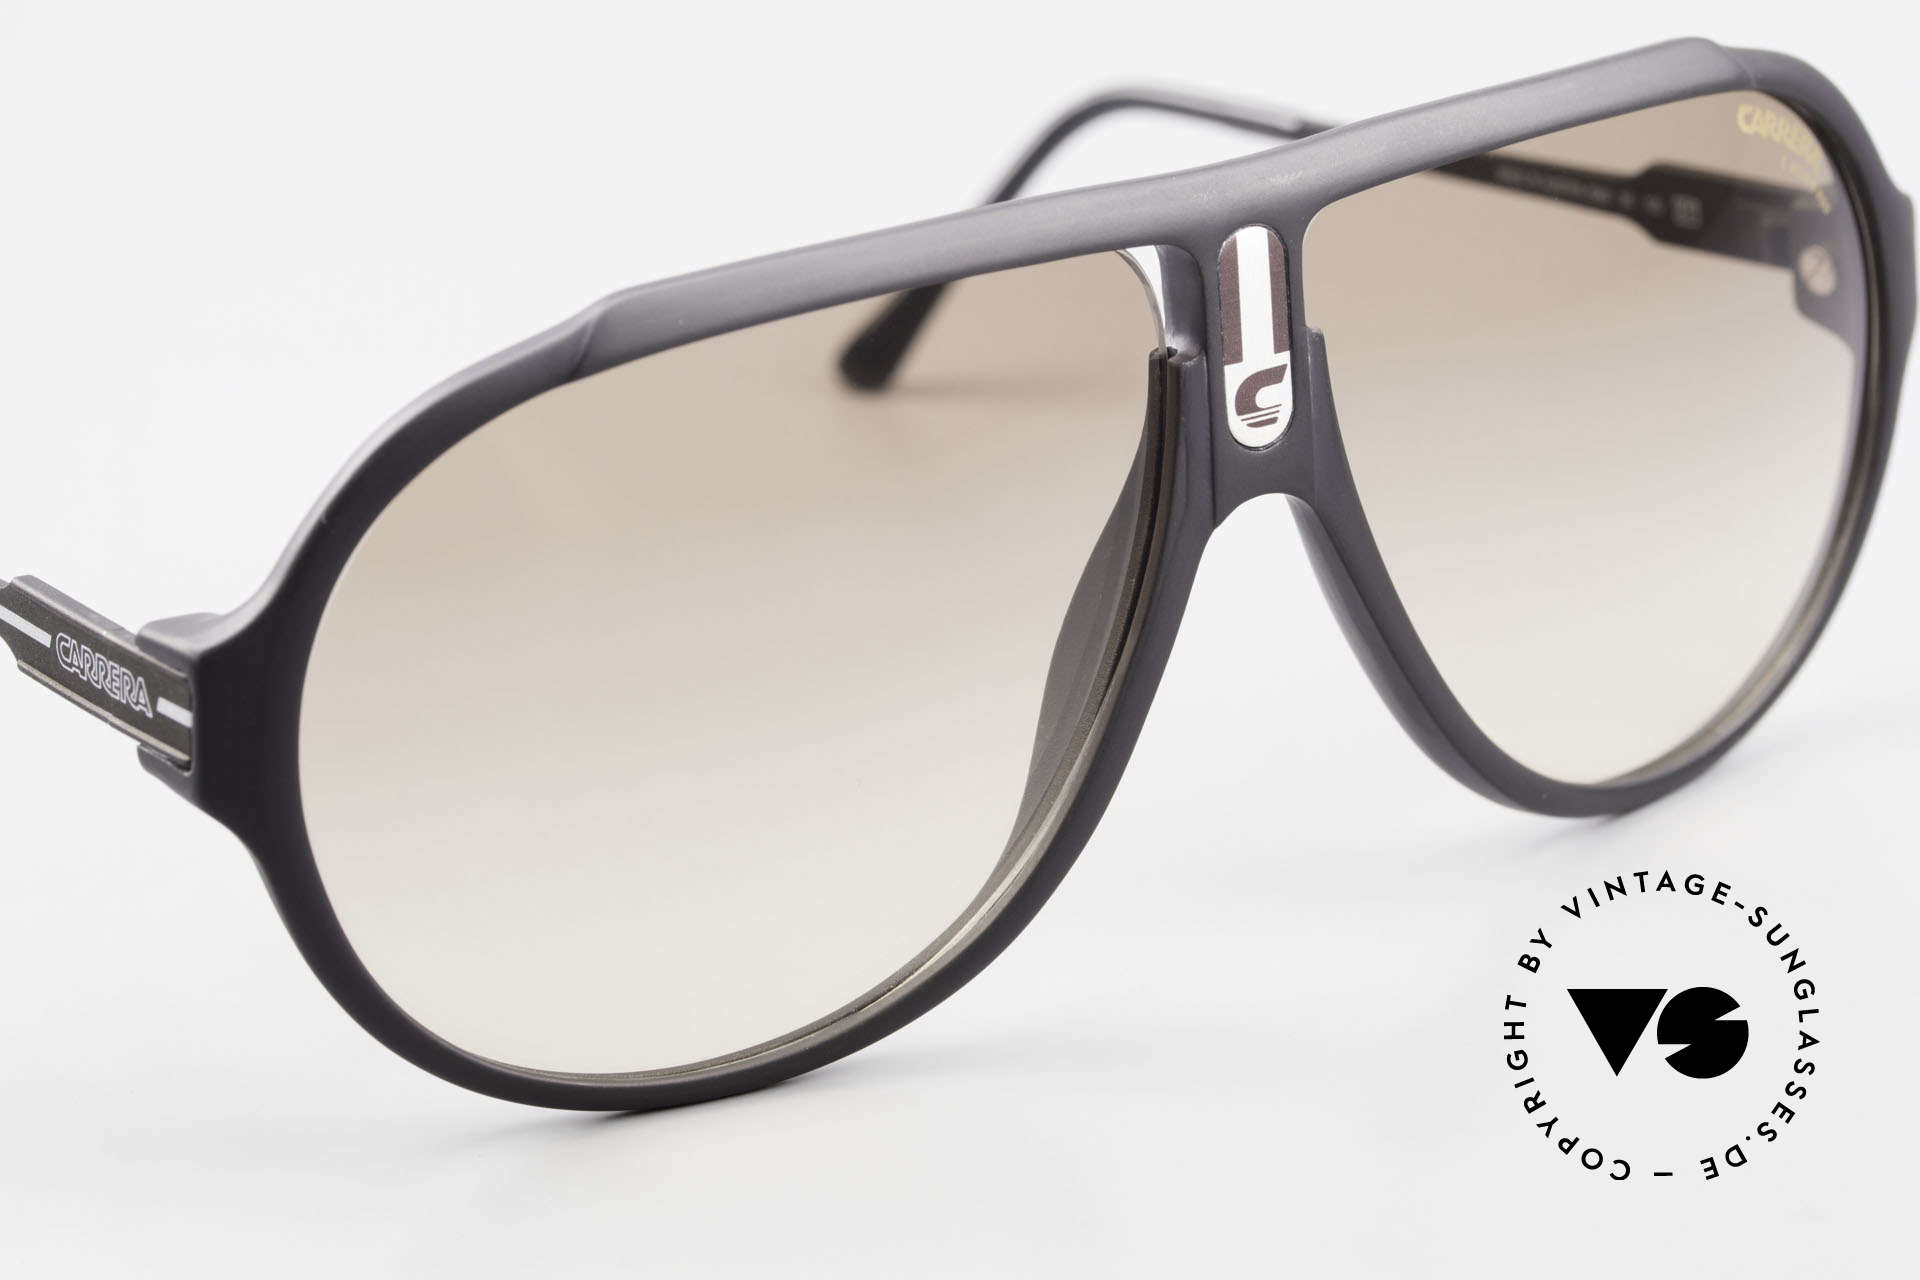 Carrera 5565 Old Sunglasses 1980's Vintage, NO retro sunglasses, but a 35 years old vintage original, Made for Men and Women